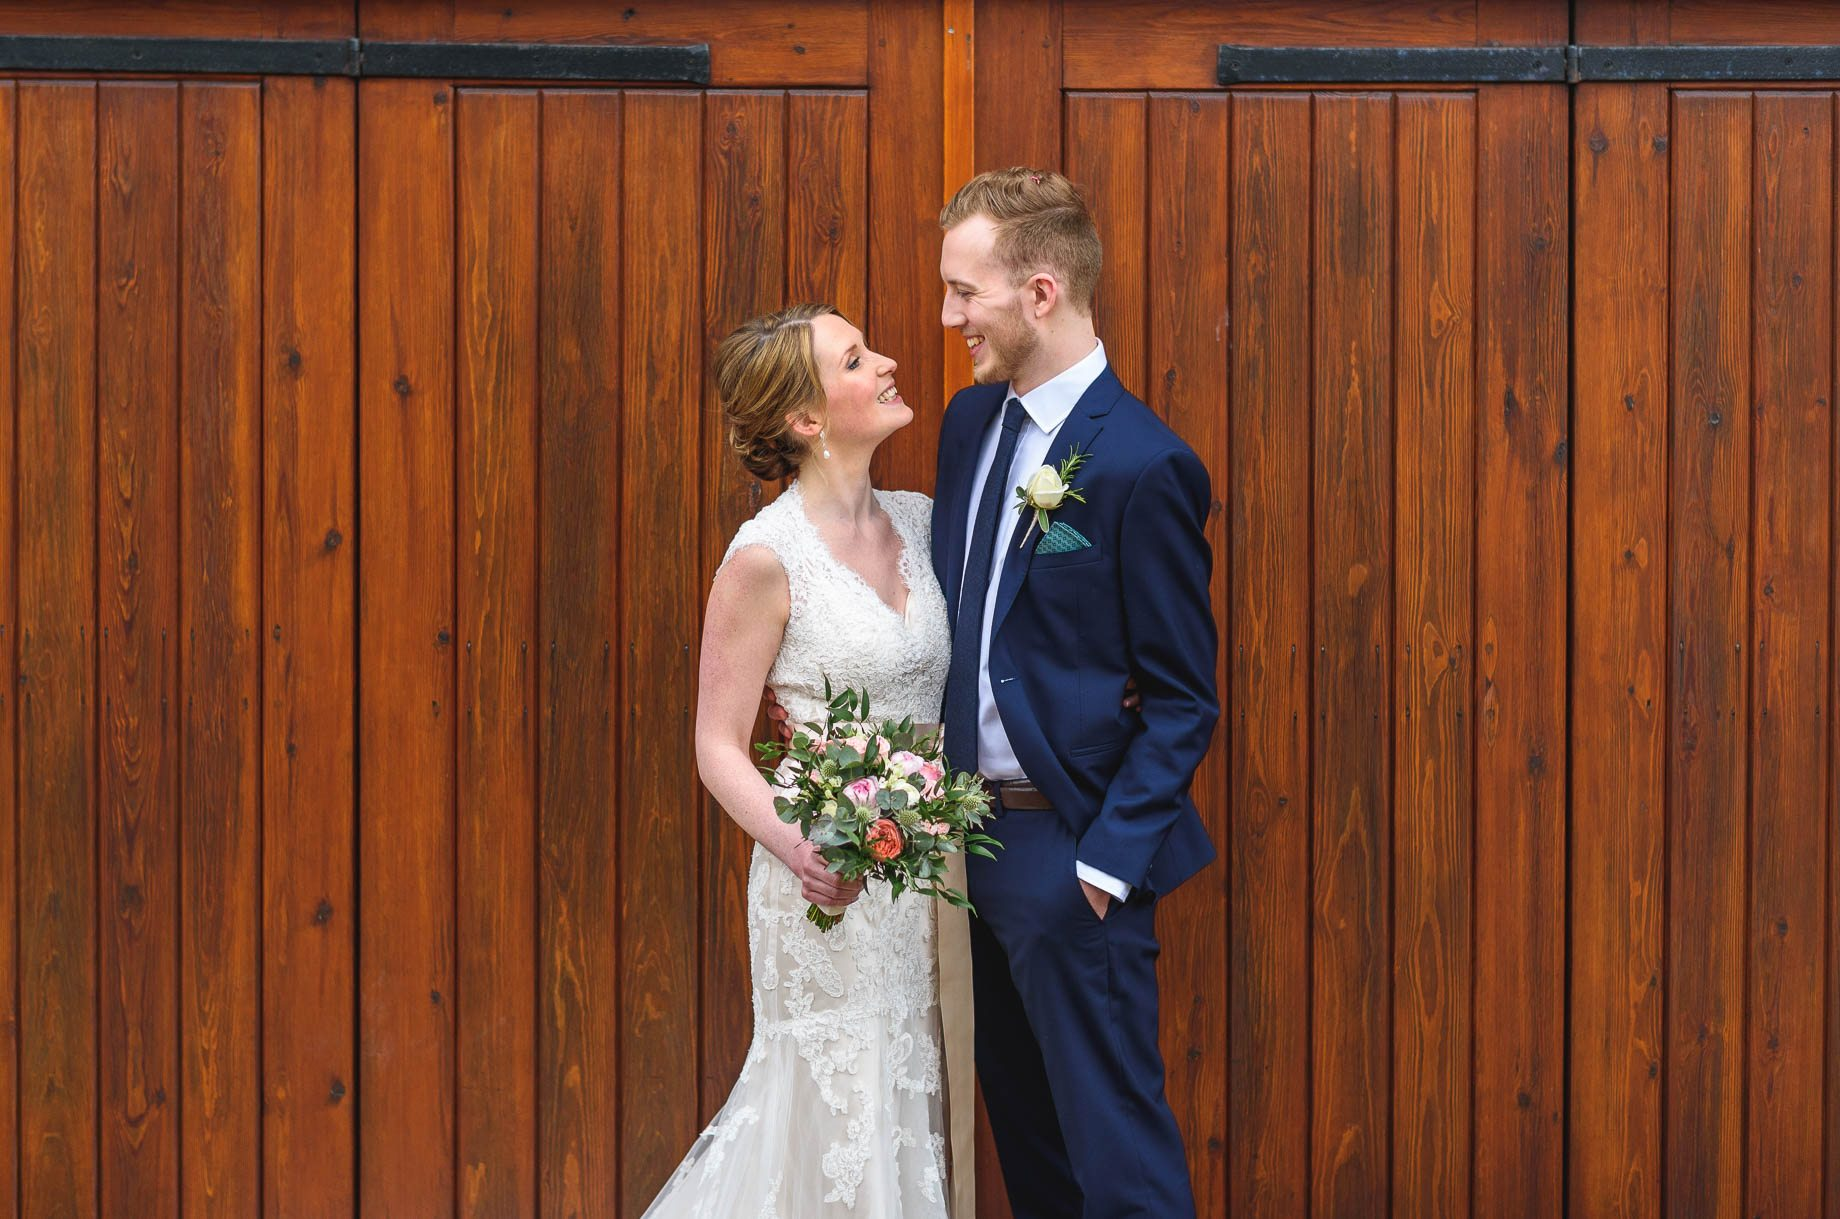 Surrey Wedding Photography by Guy Collier - Becca and James (58 of 145)